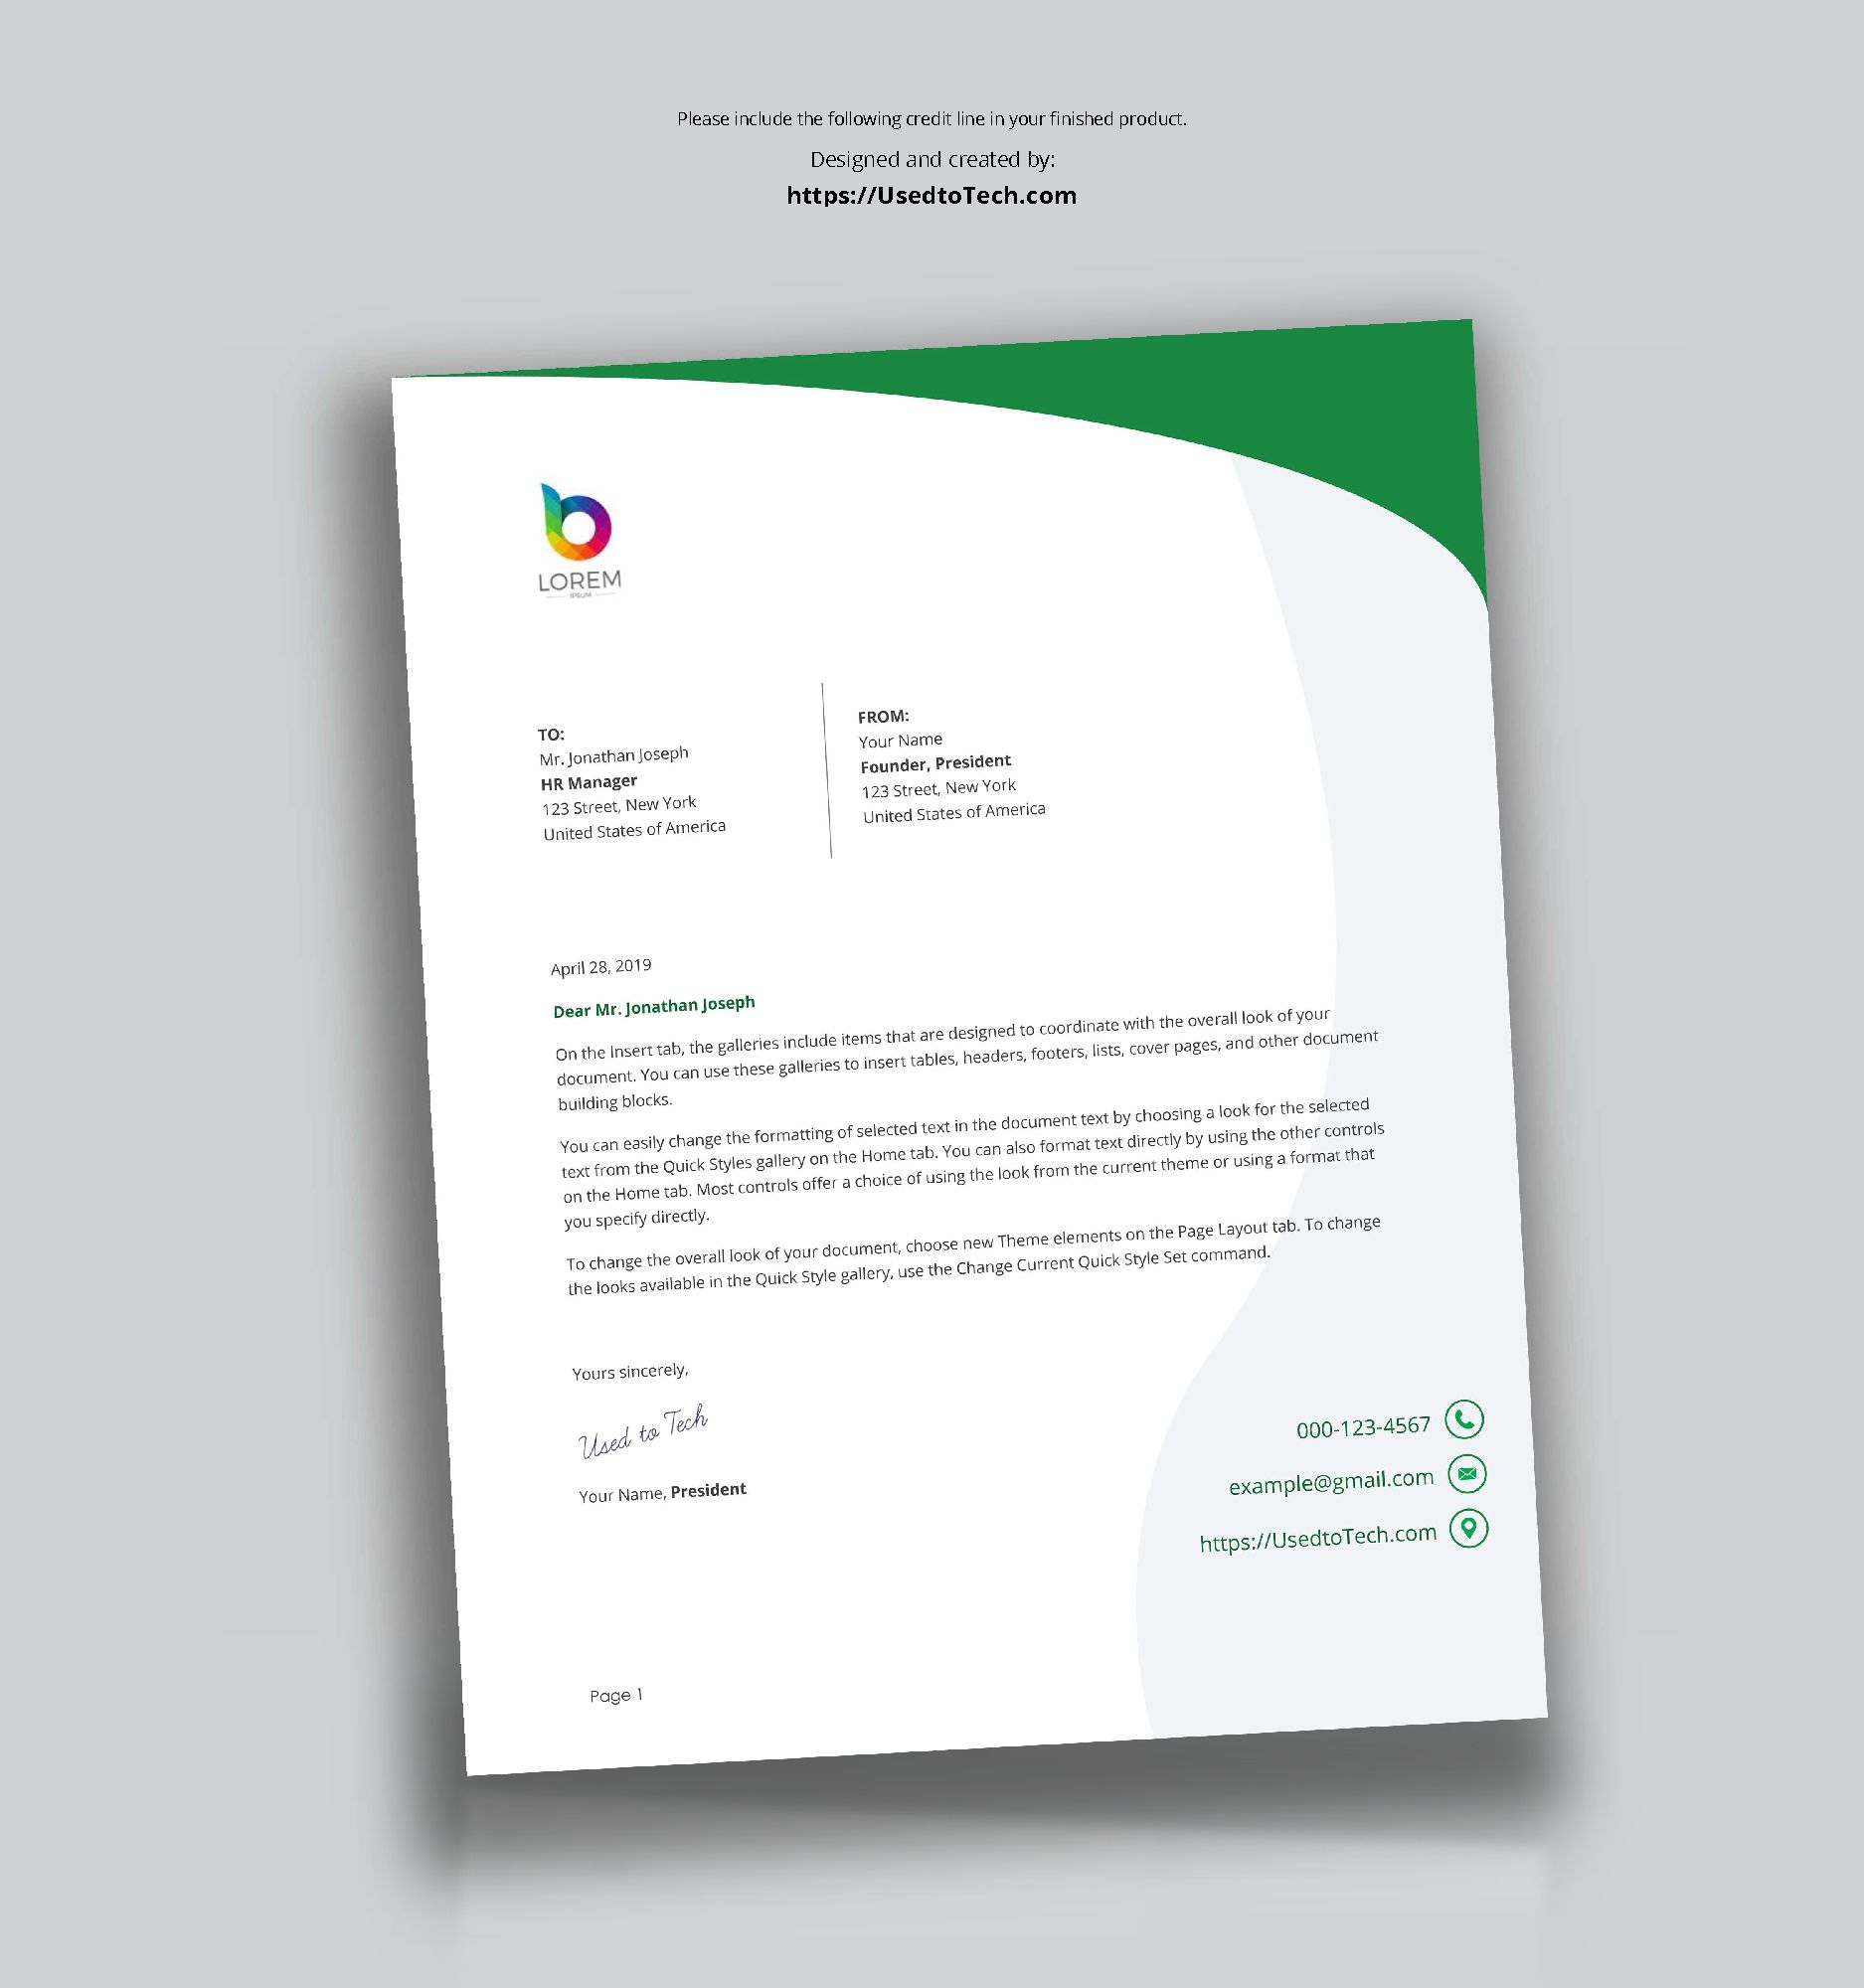 perfect letterhead design in word free used to tech for key qualifications resume ambulatory surgery nurse academic cv sample